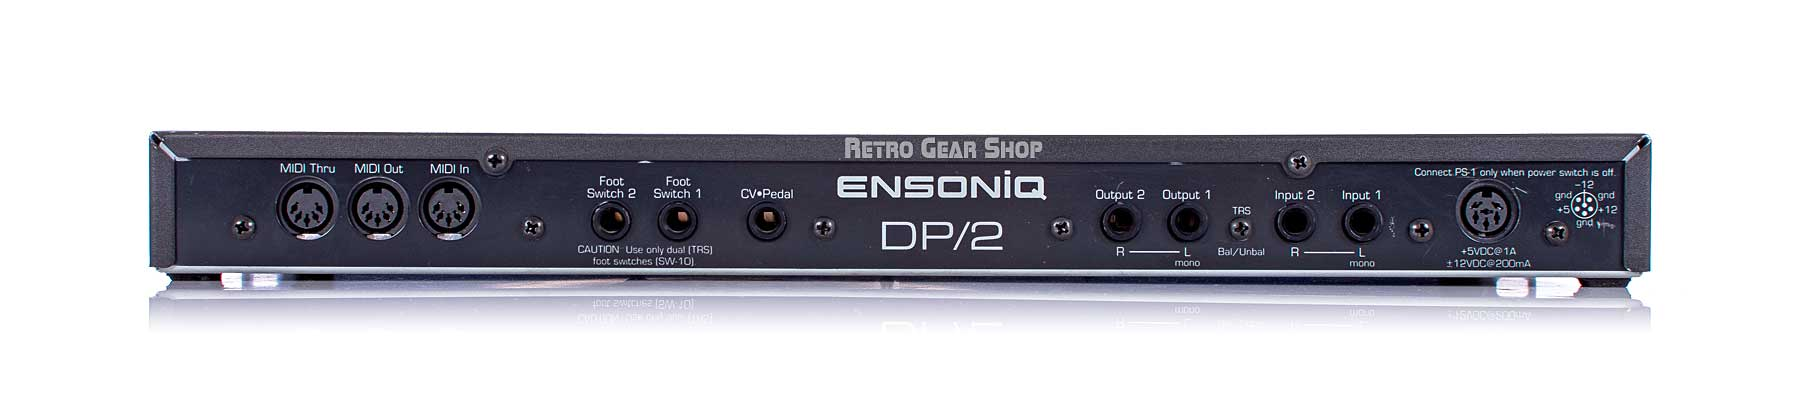 Ensoniq DP/2 Rear